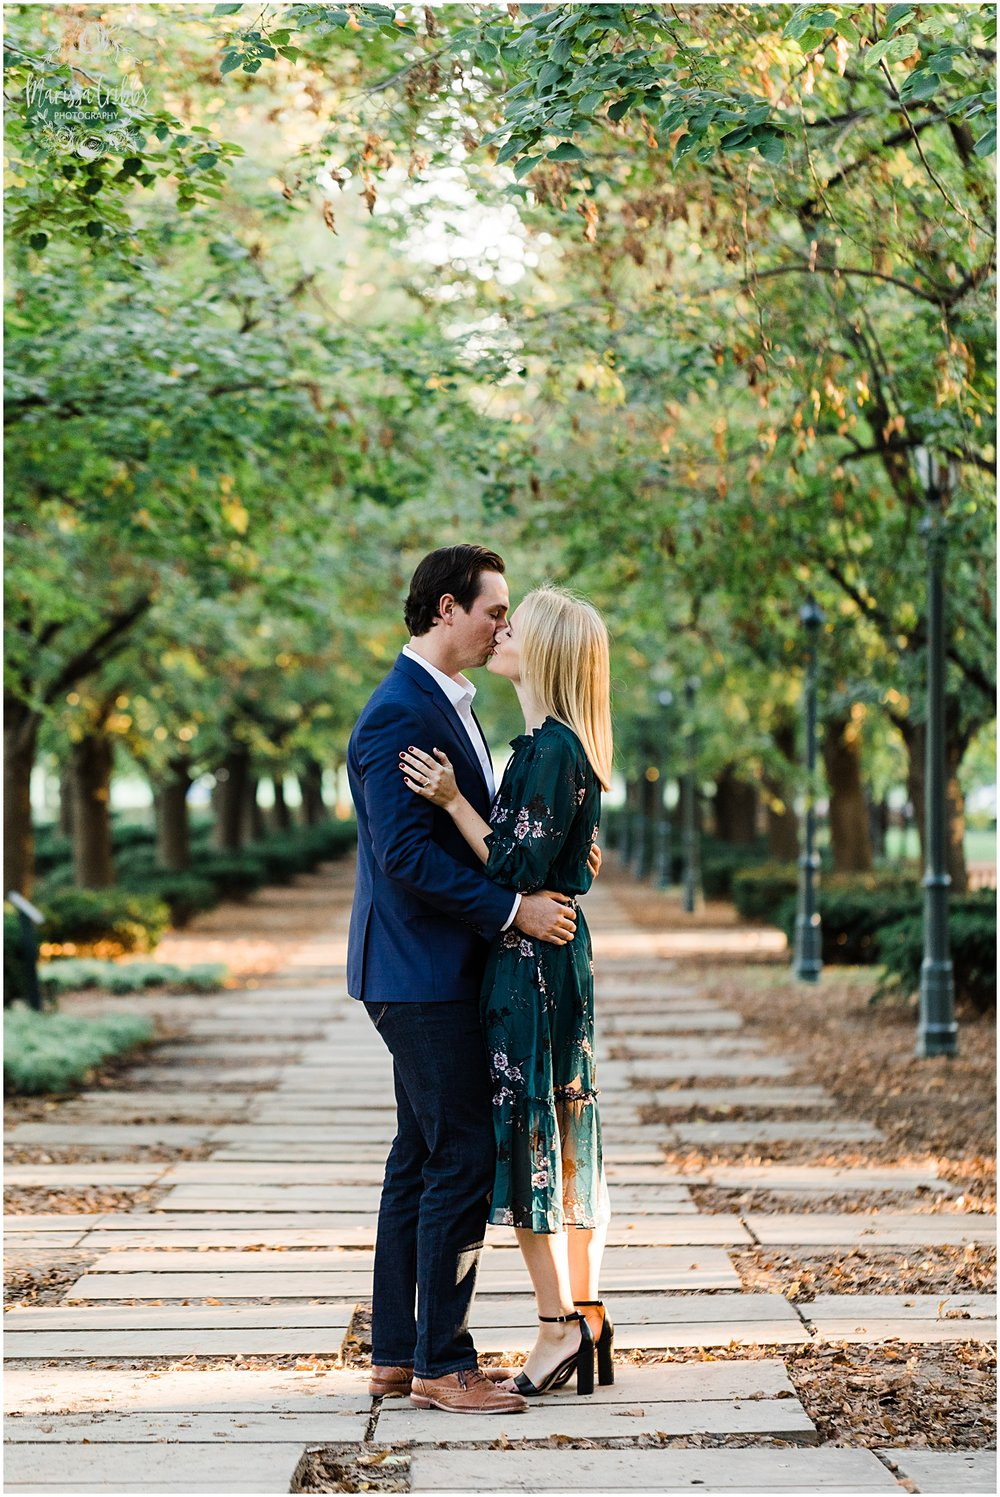 HALEY & CHASE ENGAGED LOOSE PARK & NELSON ATKINS | FALL ENGAGEMENT PHOTOS | MARISSA CRIBBS PHOTOGRAPHY_6875.jpg